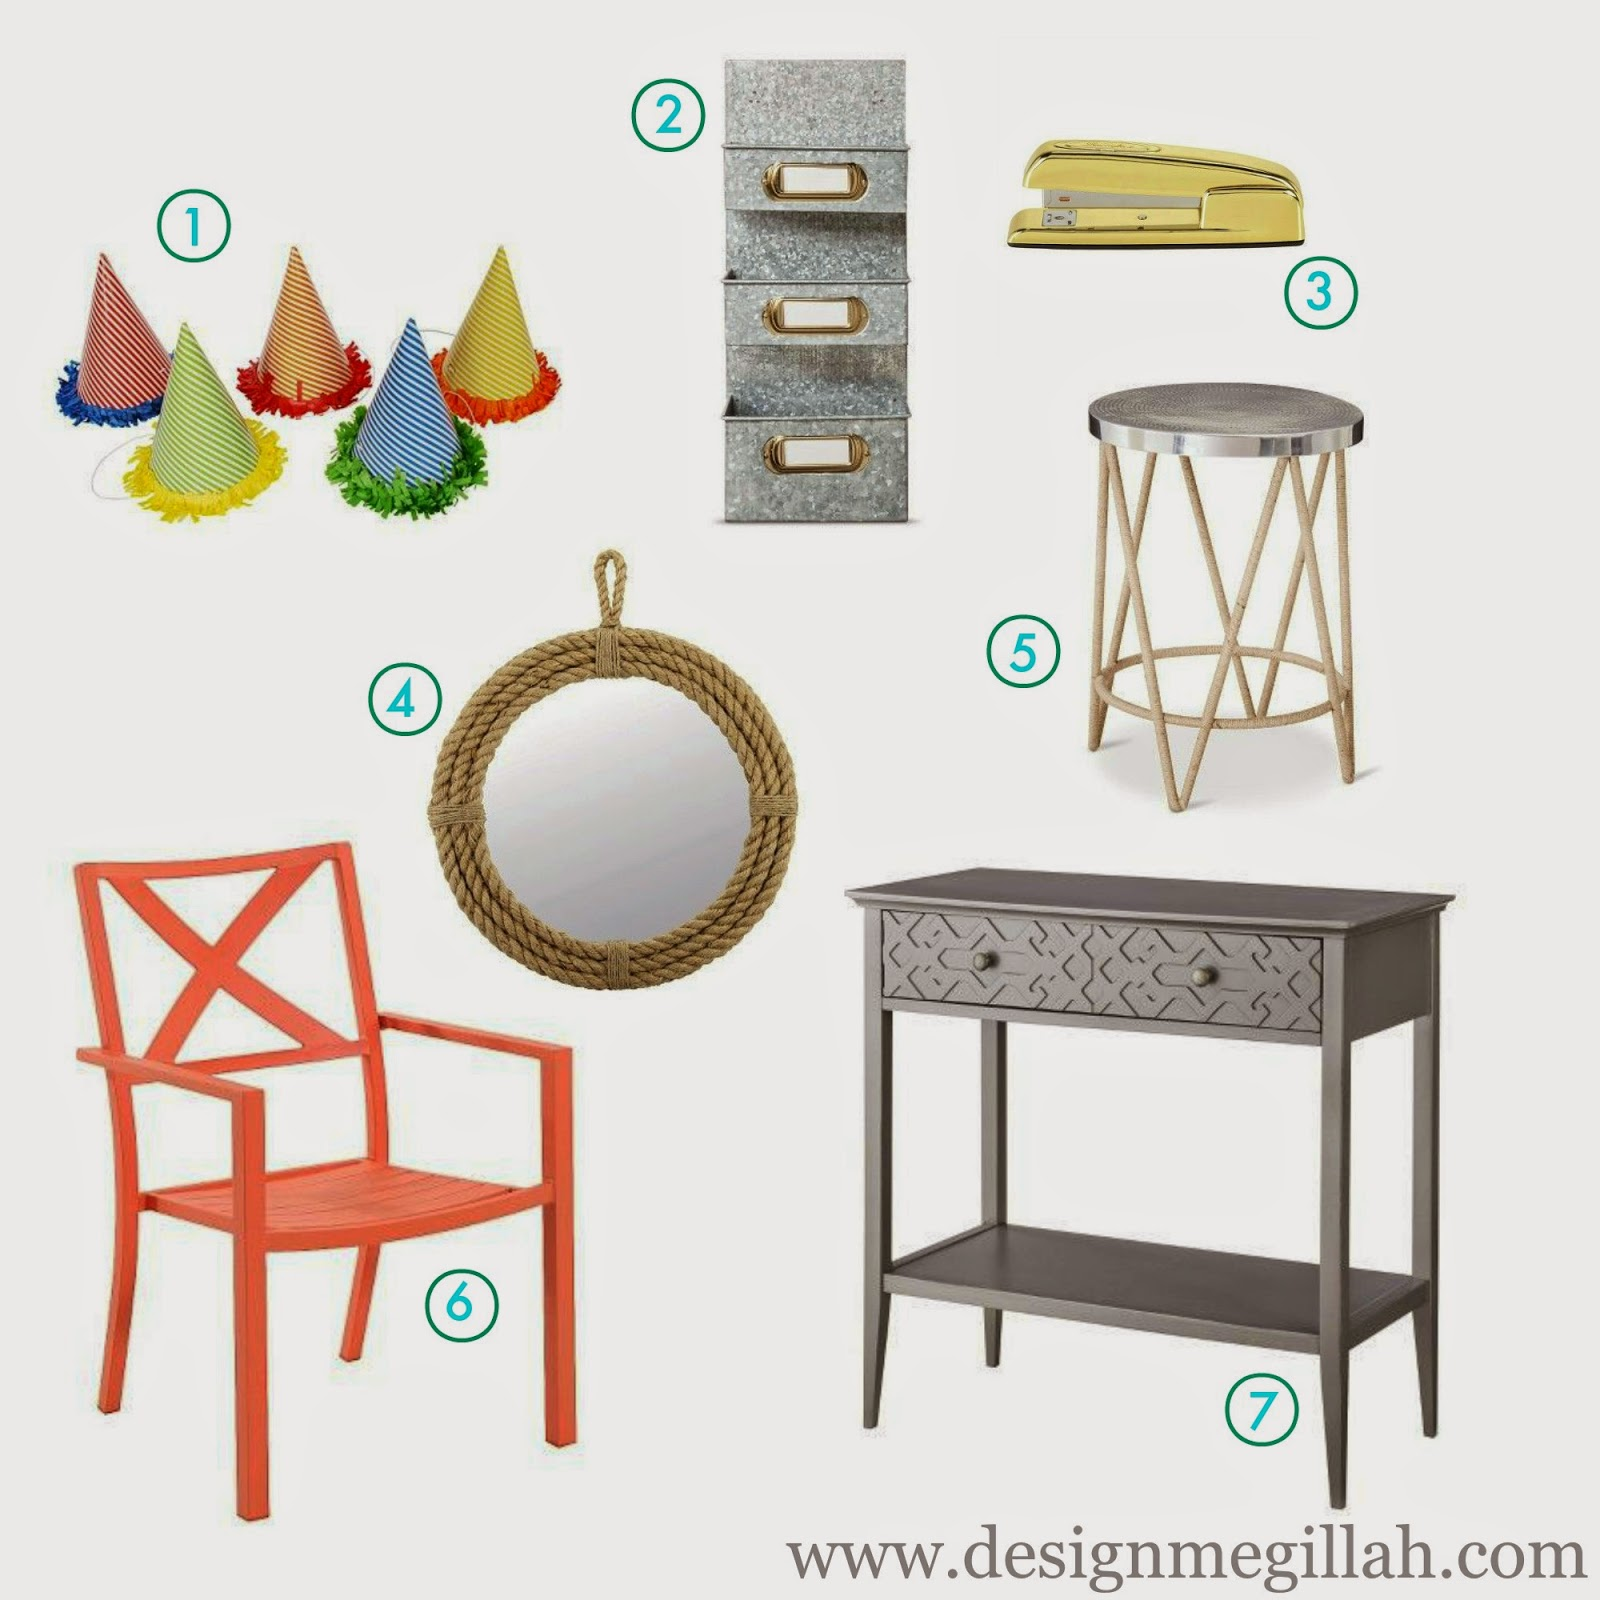 design megillah spring target fretwork accent table nate berkus gold stapler round rope mirror wrapped patio metal stacking chair coral gray console wicker sets clearance cabinets